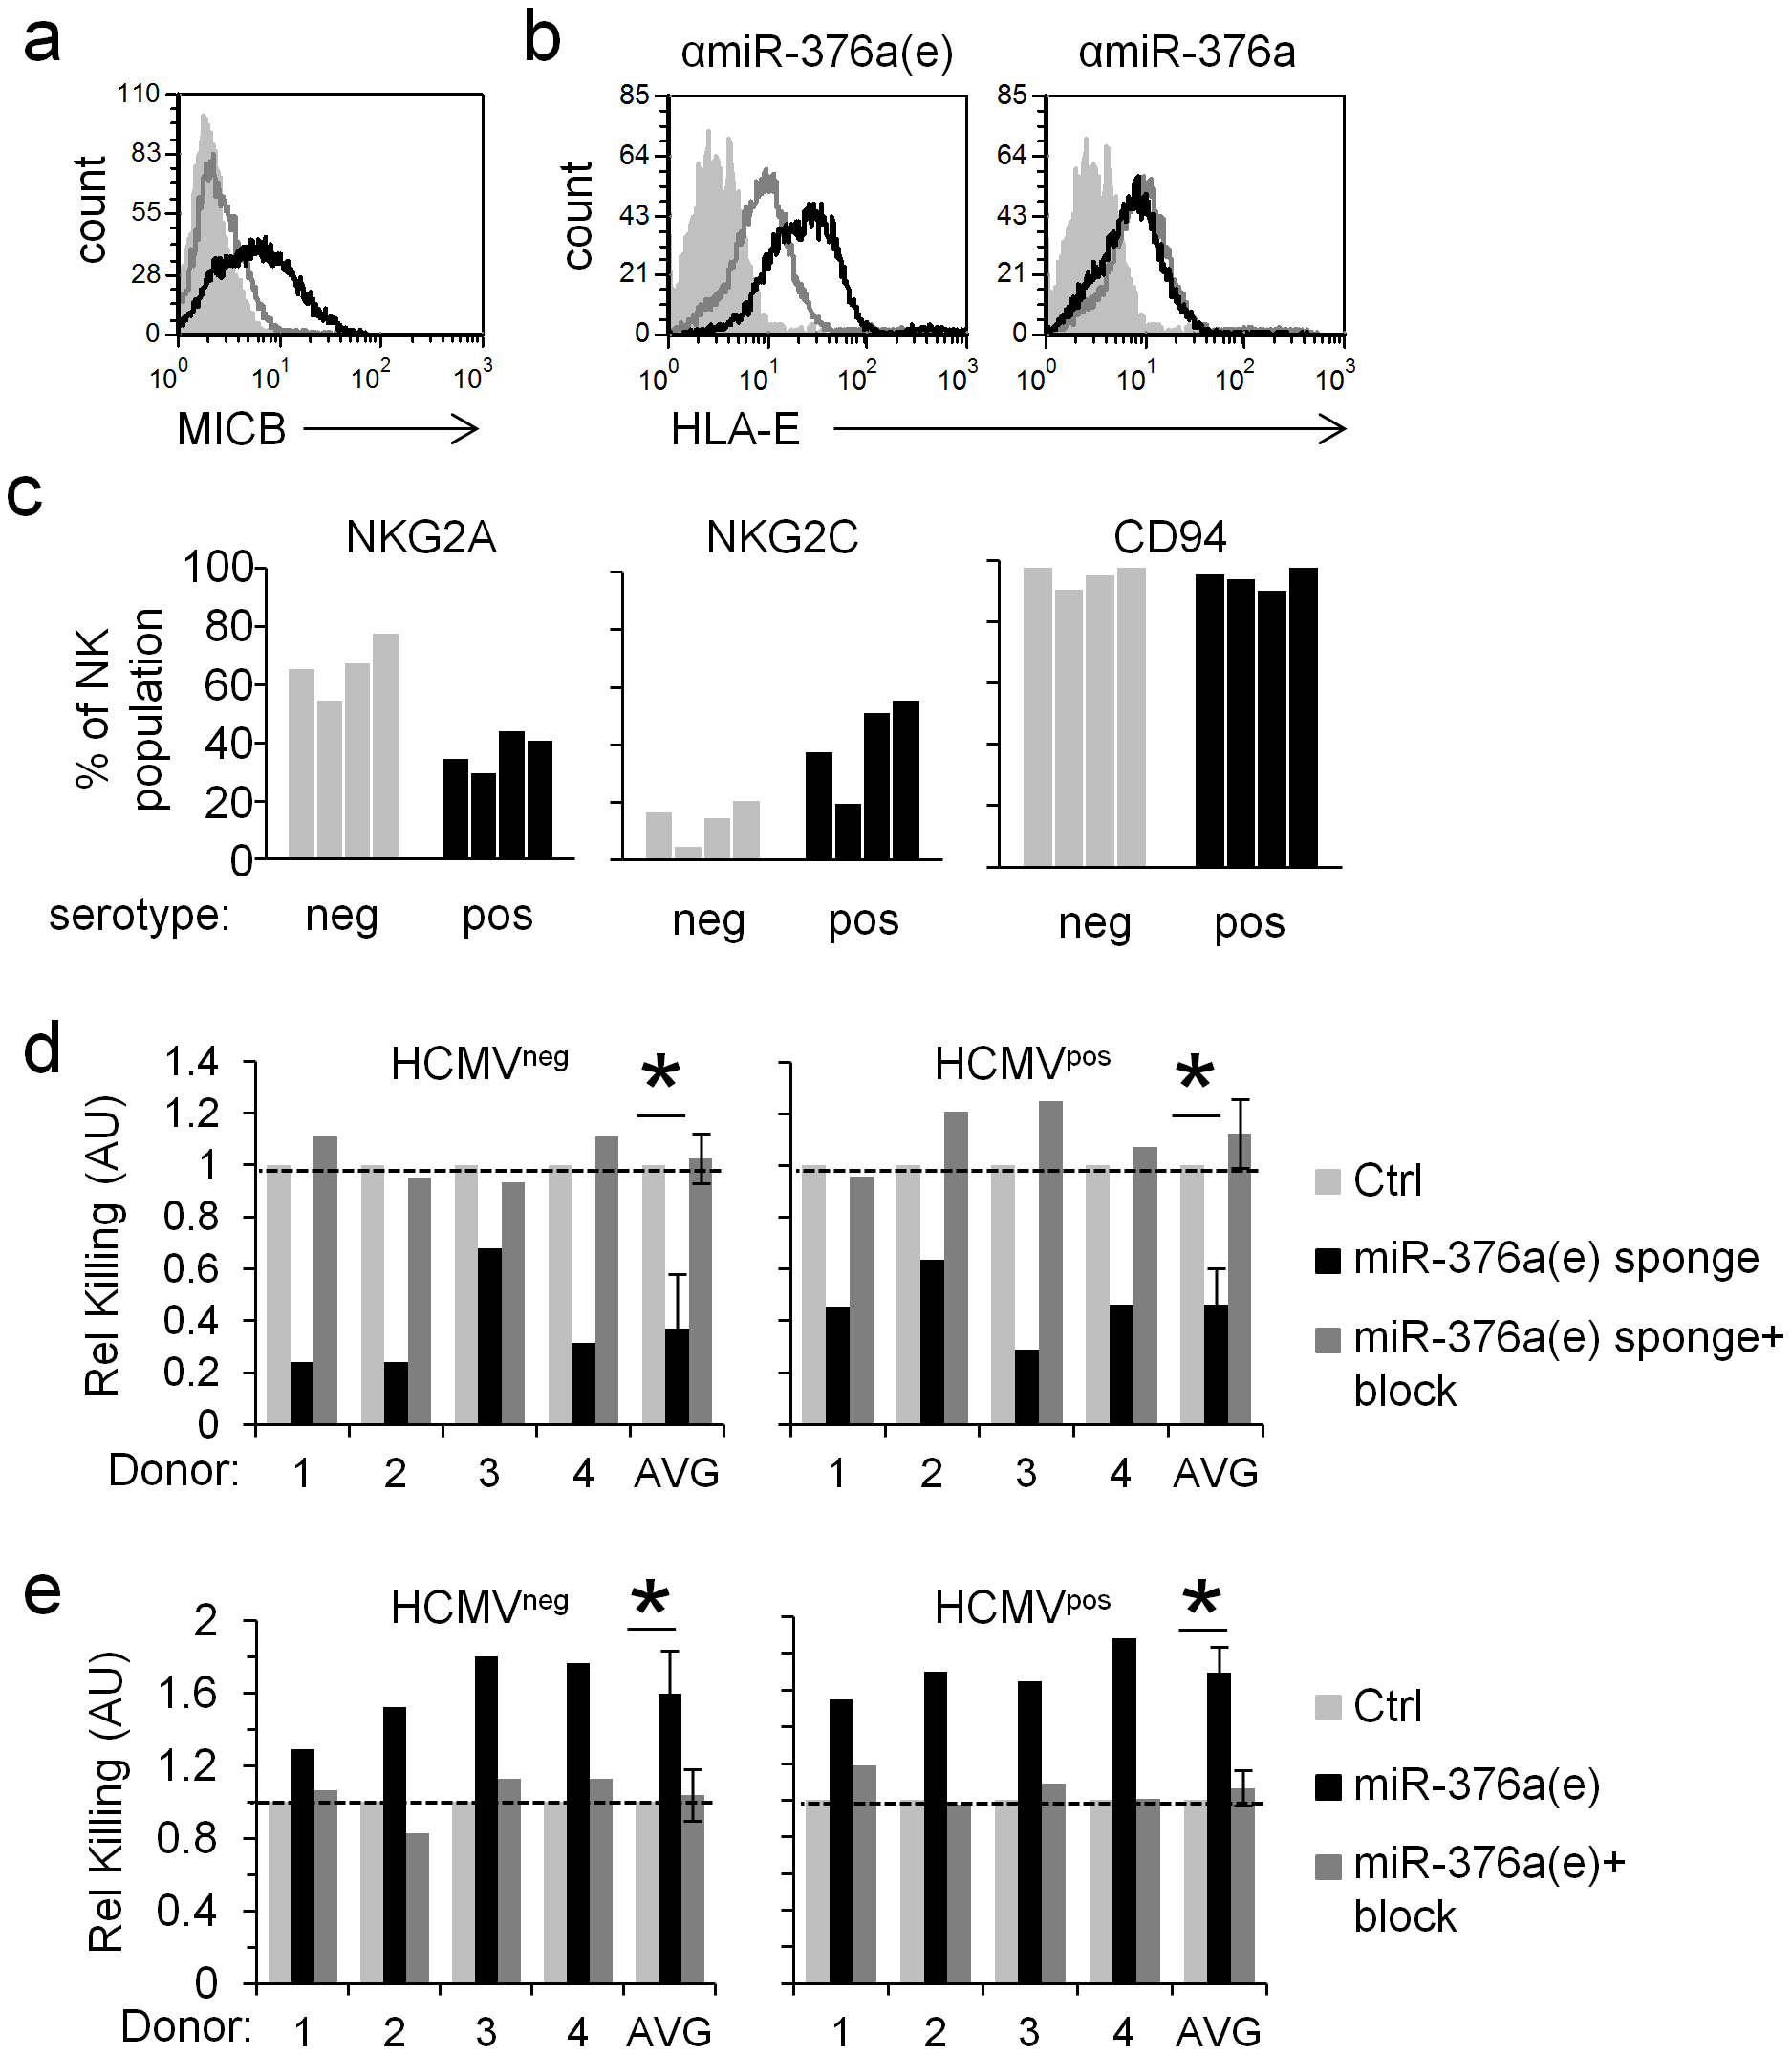 The regulation of HLA-E by miR-376a(e) during infection affects NK cell cytotoxicity.